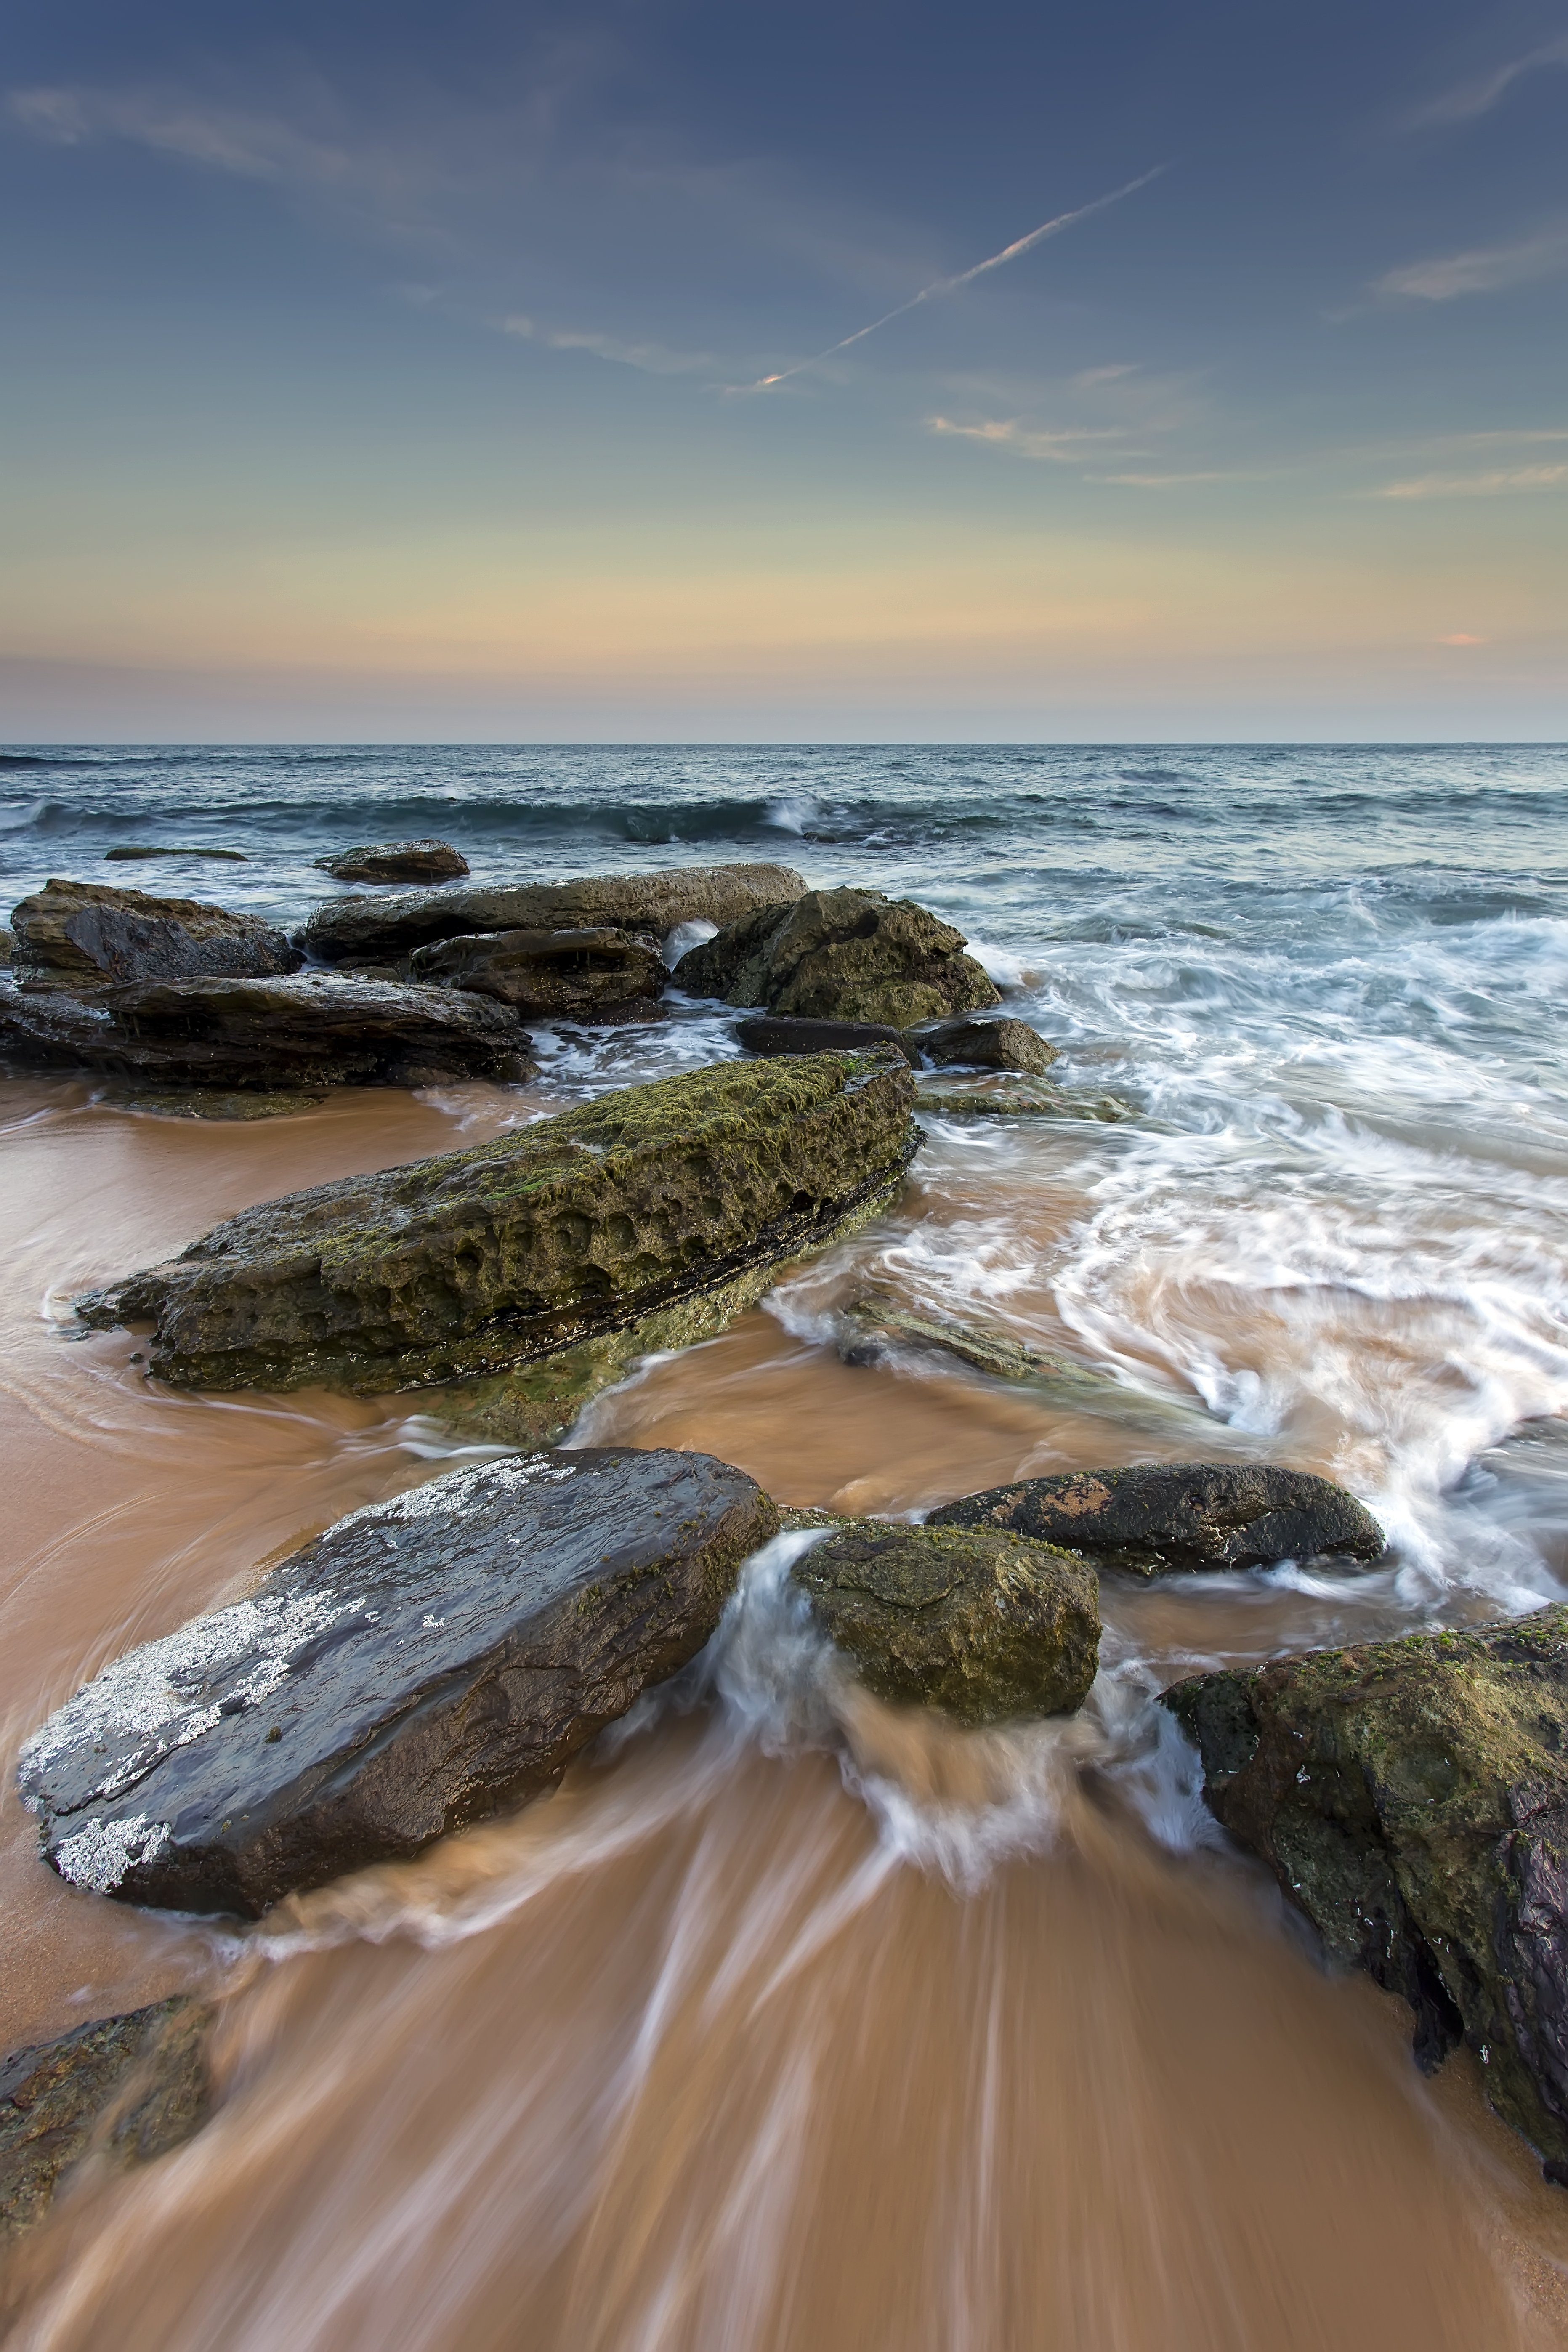 145114 download wallpaper Nature, Sea, Stones, Beach, Horizon, Tide, High Tide screensavers and pictures for free